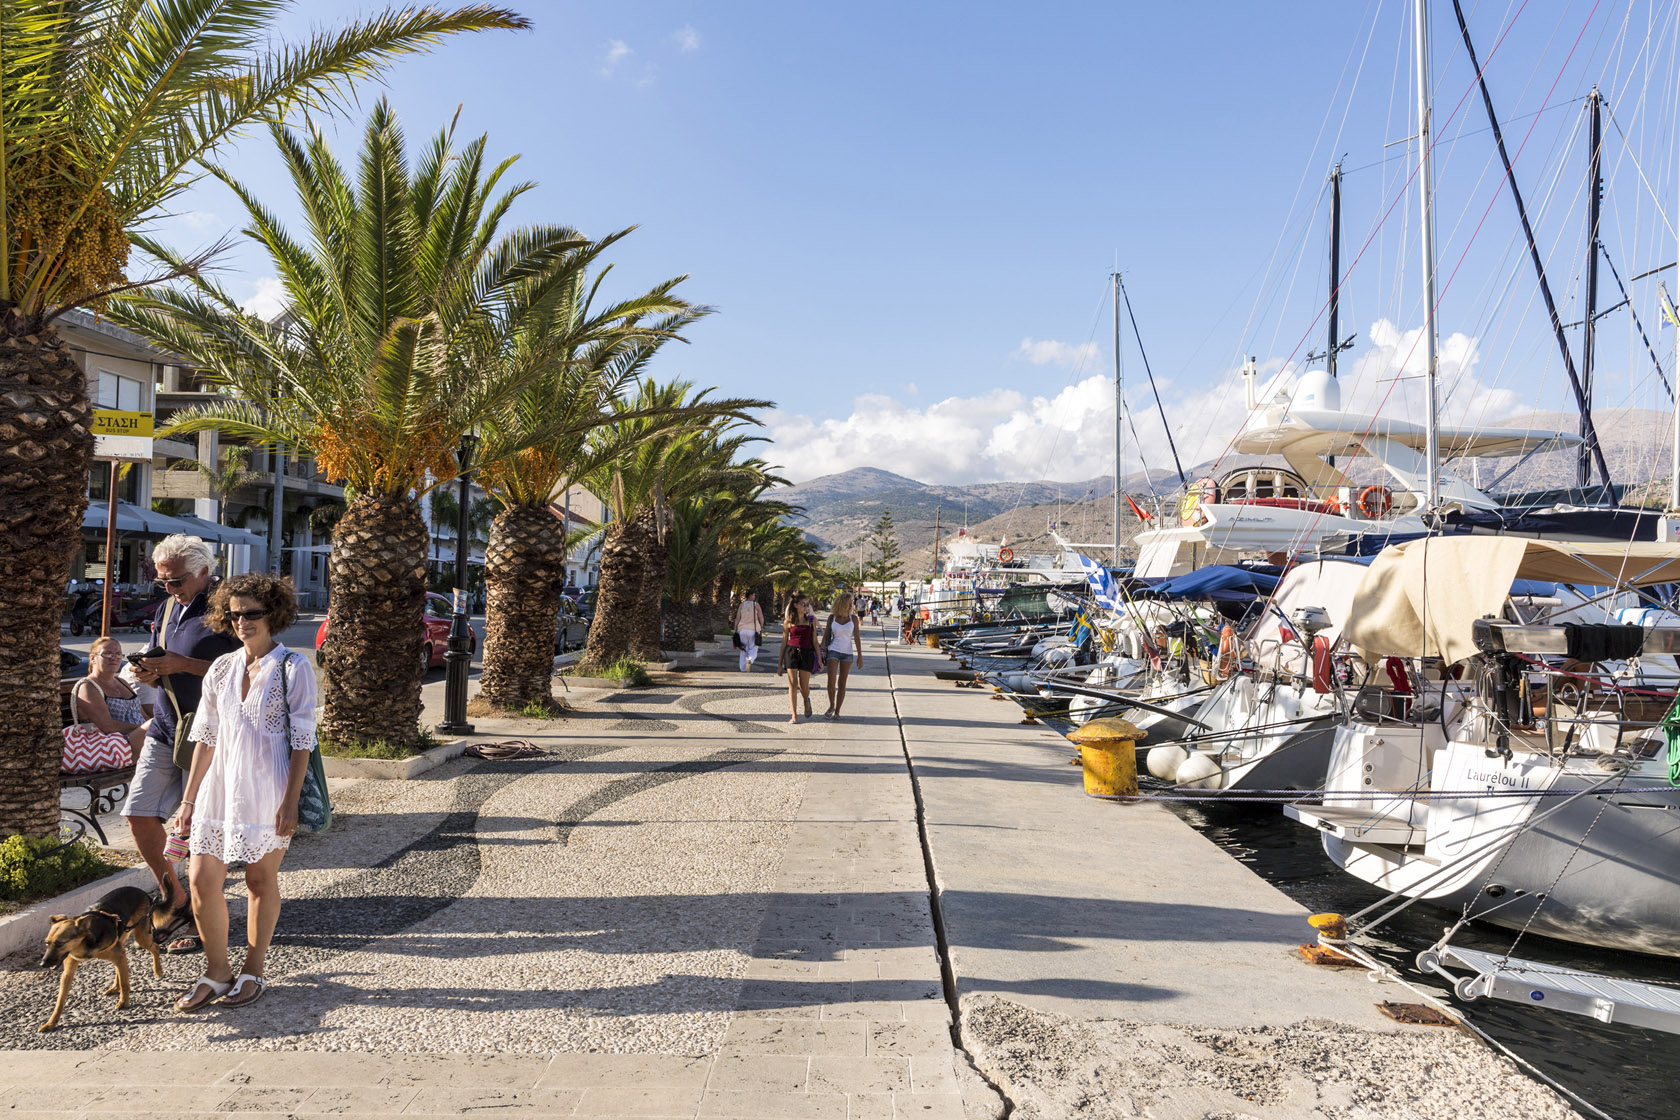 People stroll along the promenade of Argostoli.